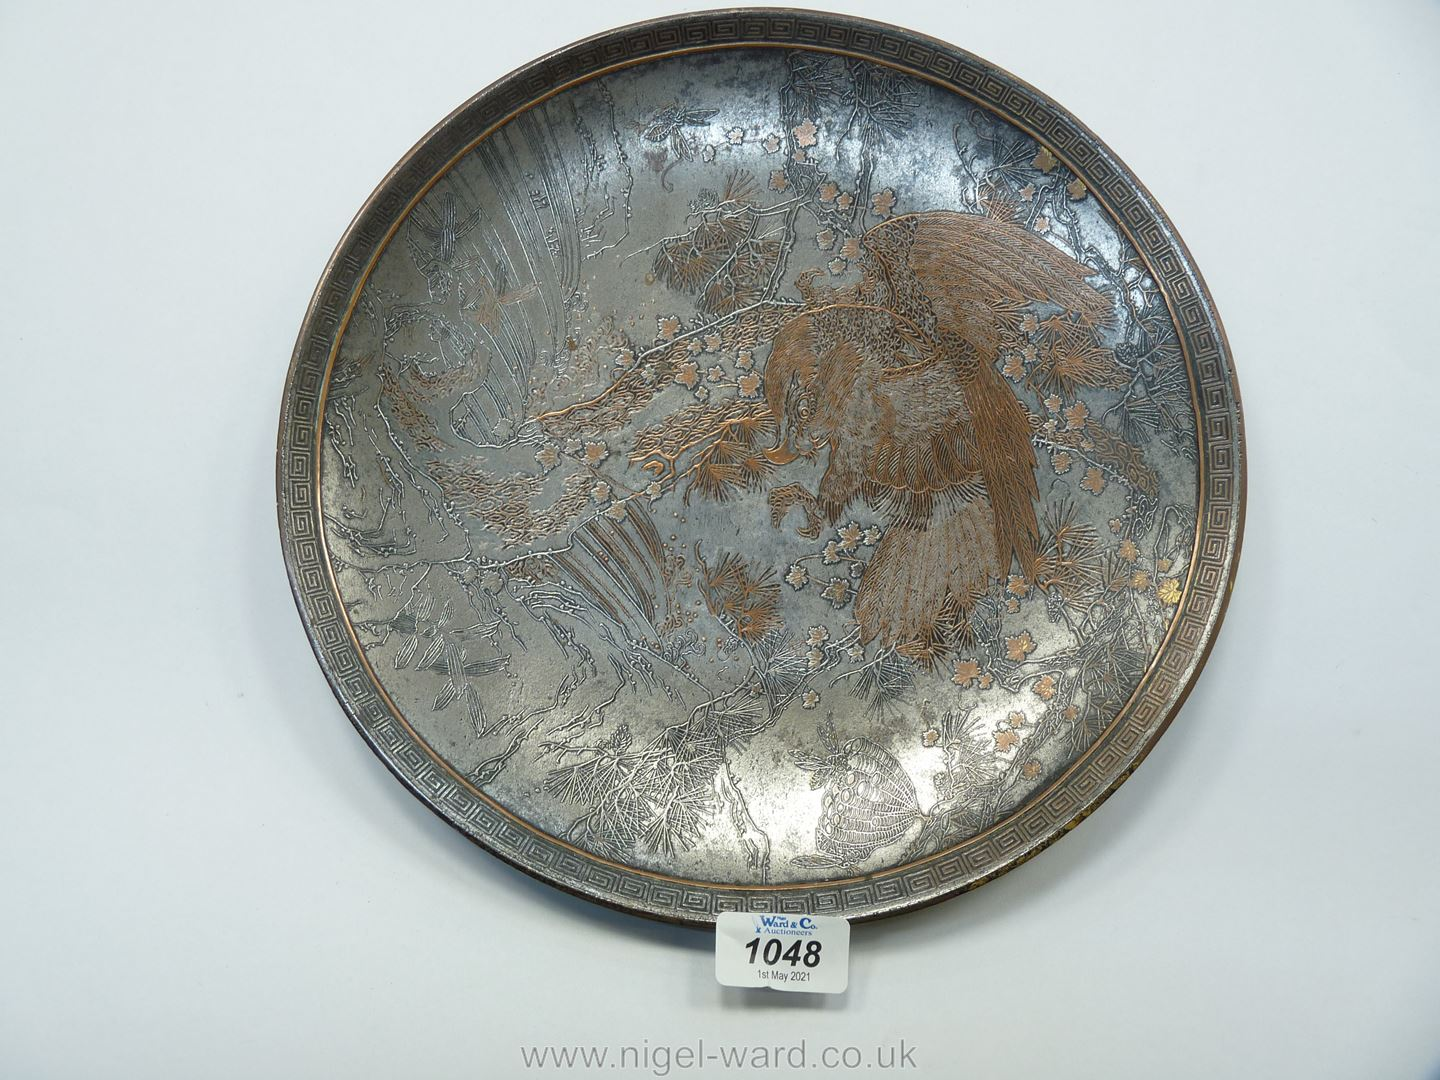 A Japanese iron Dish inlaid in copper with a design of an eagle among pine branches,